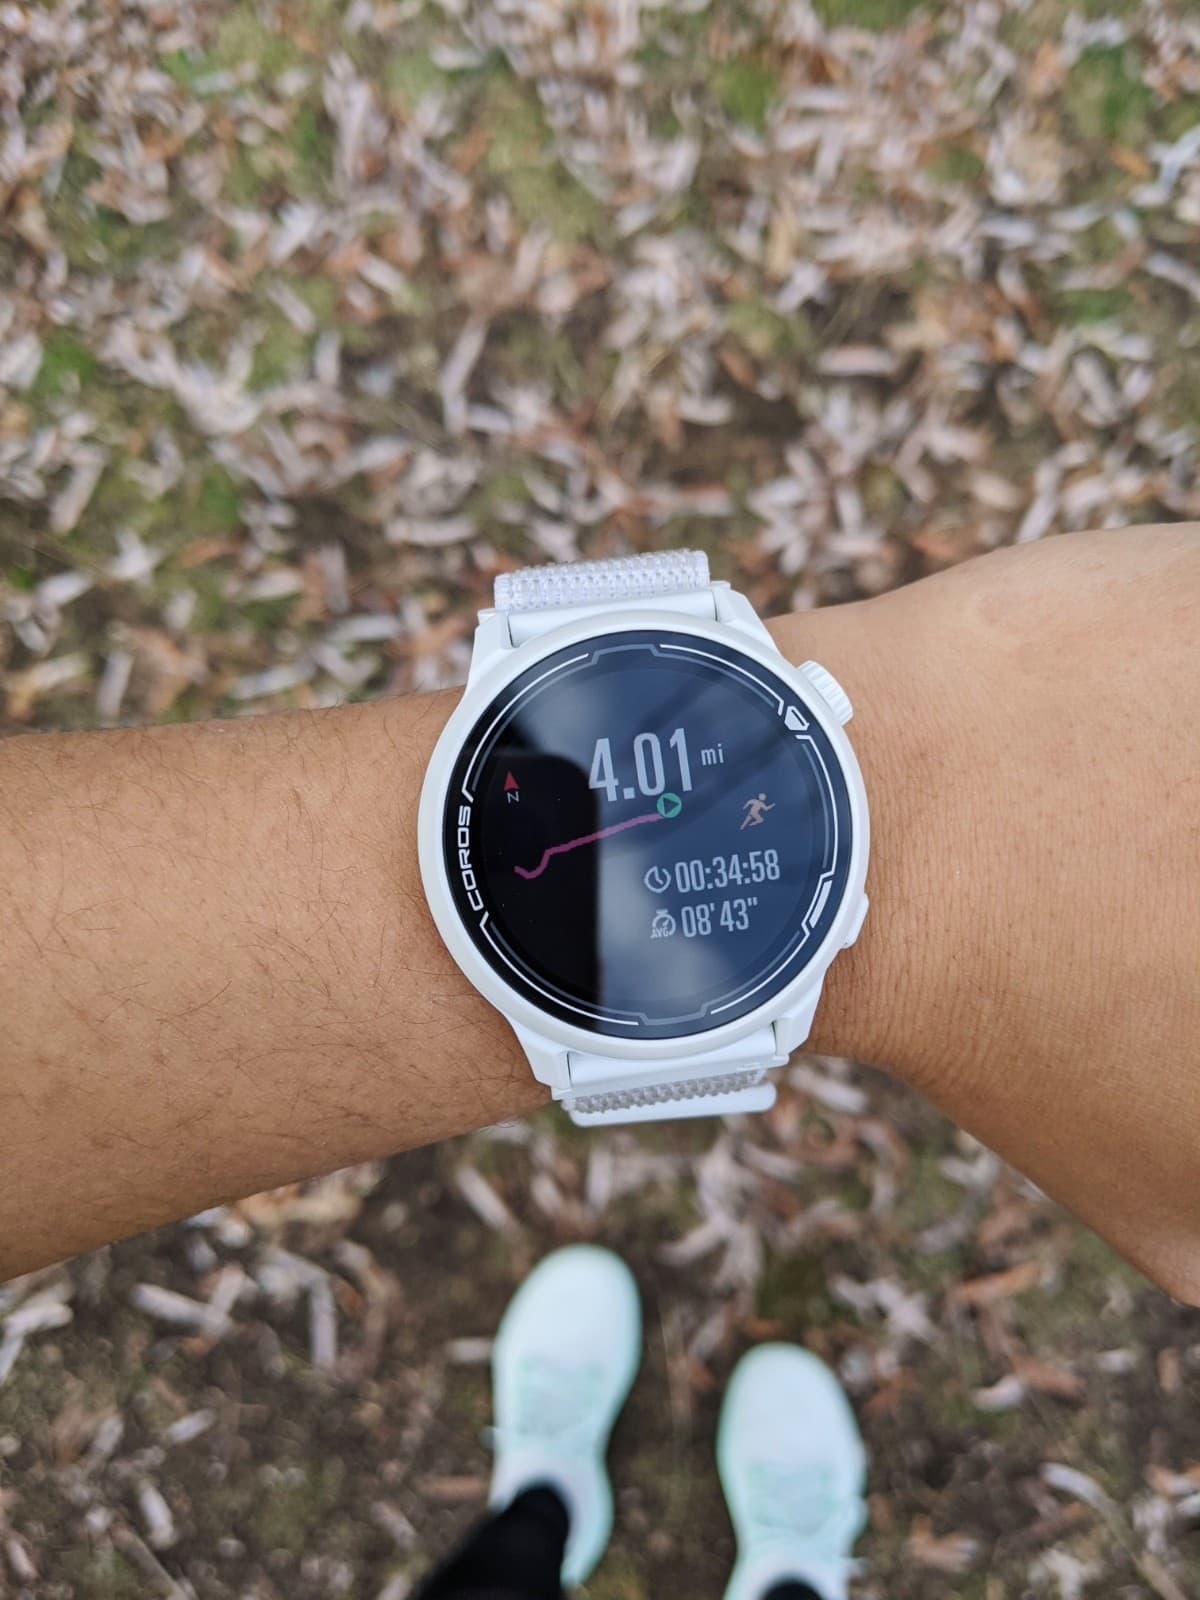 the watch face of the white COROS PACE 2 with a nylon band after a run